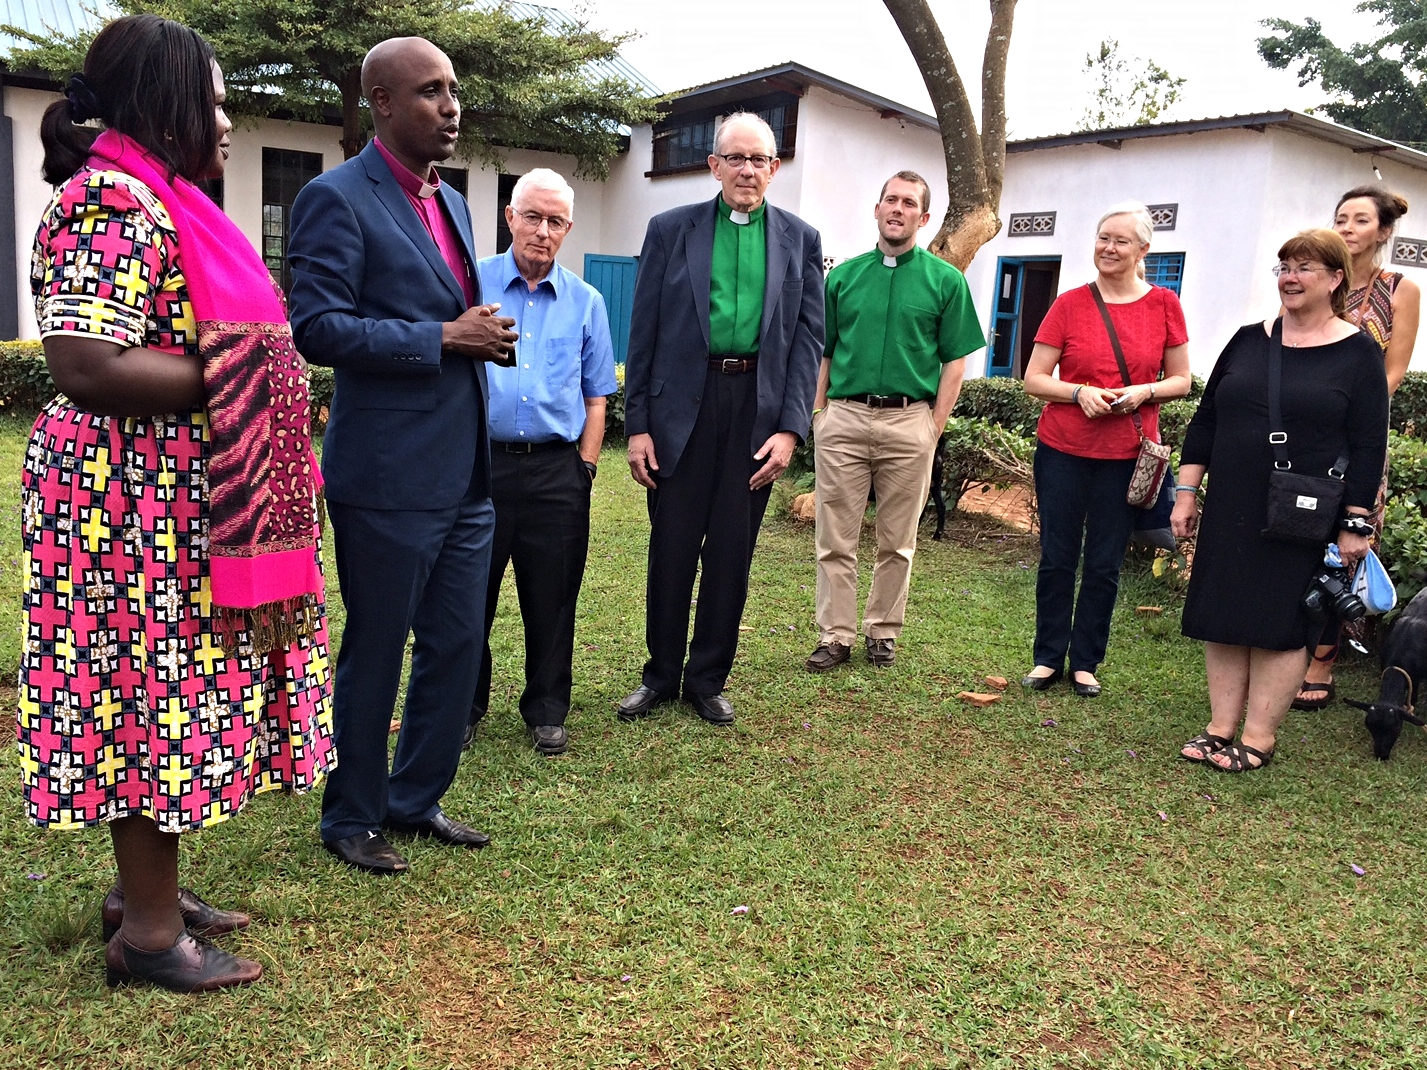 From left, Rev. Julie Kandema, Vice-President of the Presbyterian Church of Rwanda, Rev. Jerome Bizimana, Rob Weingartner and other members of the Outreach team on a recent visit to Rwanda.